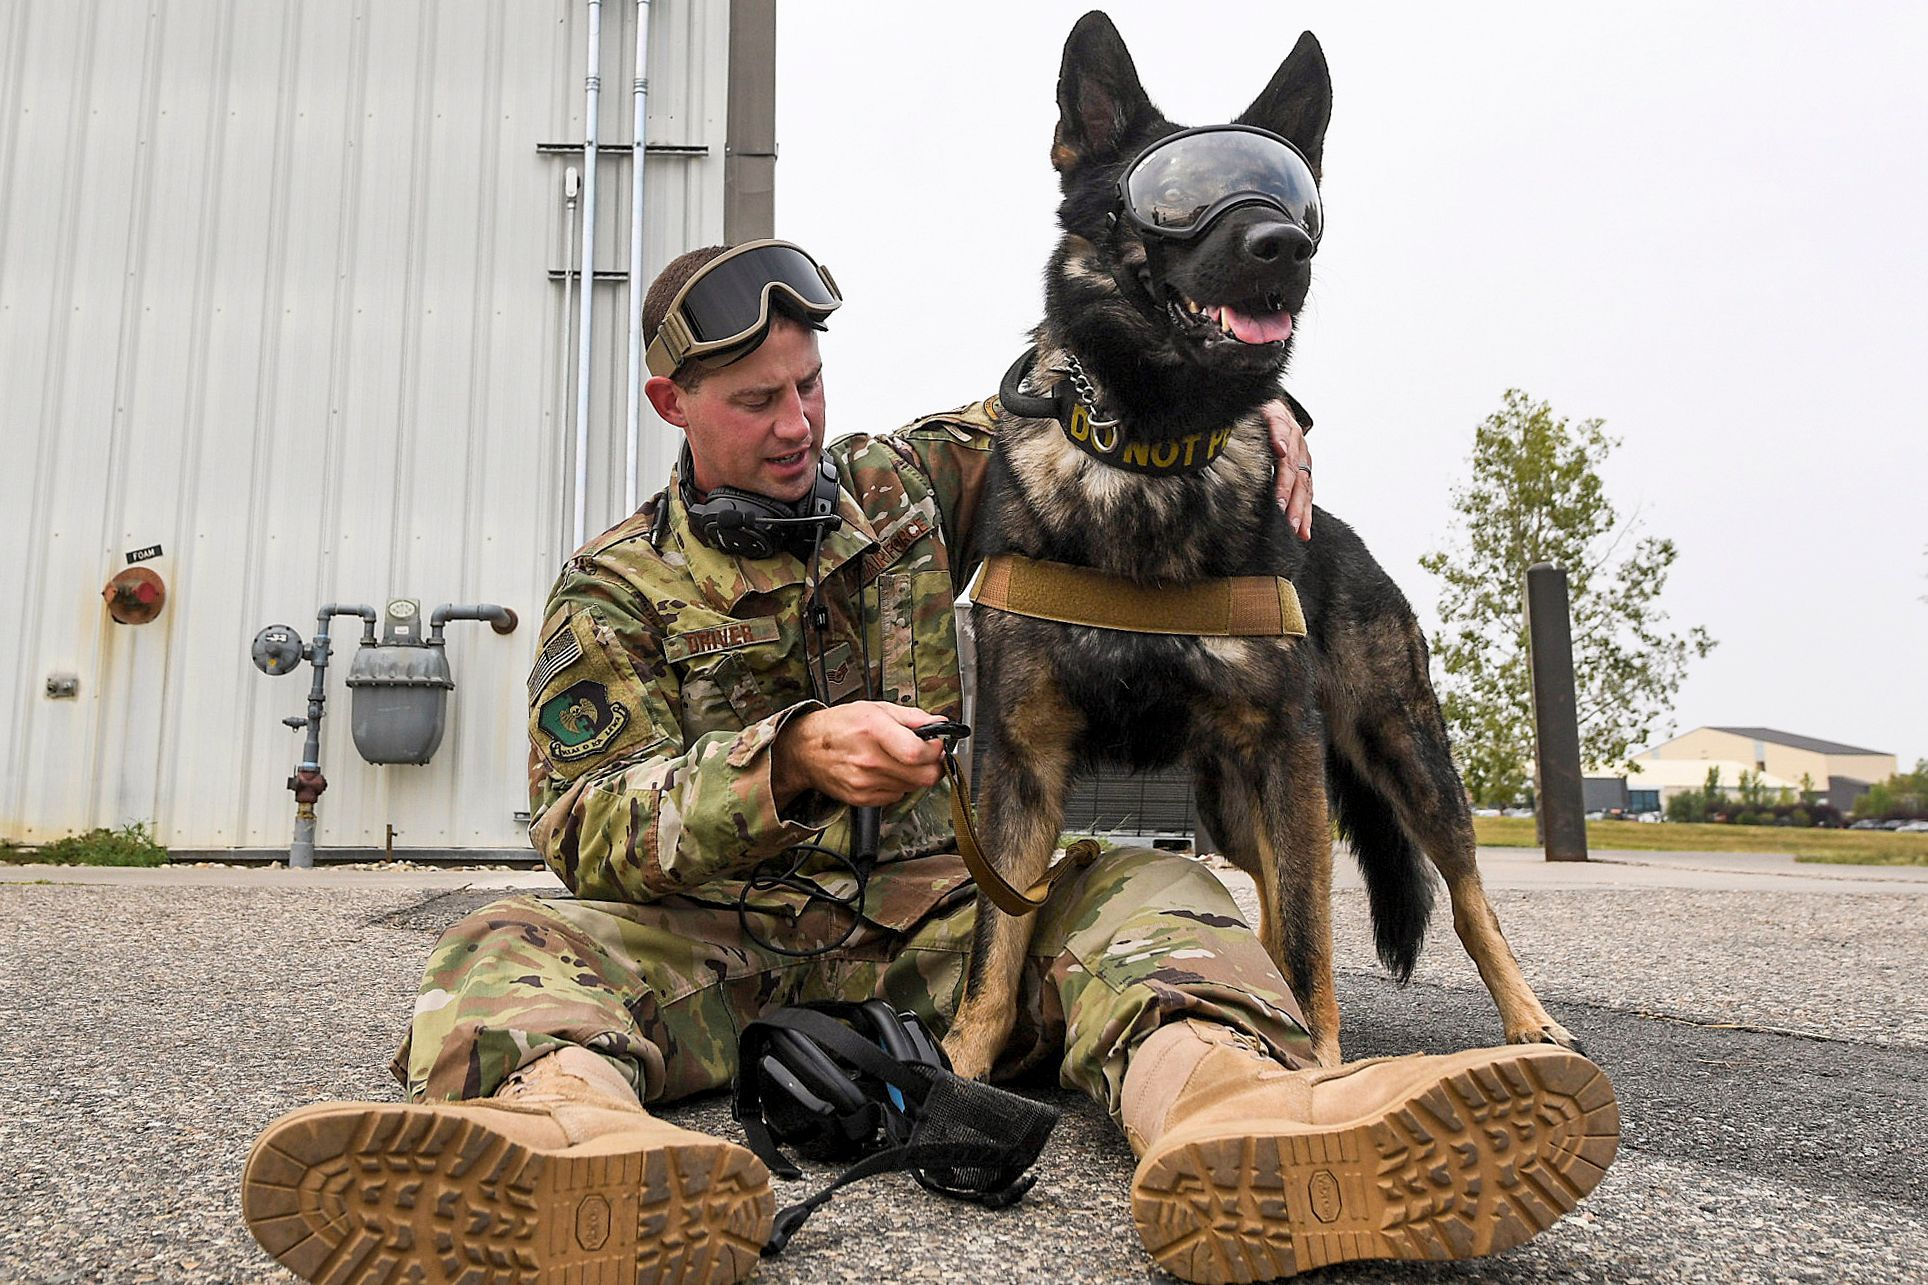 A soldier with a military dog wearing an AR goggle